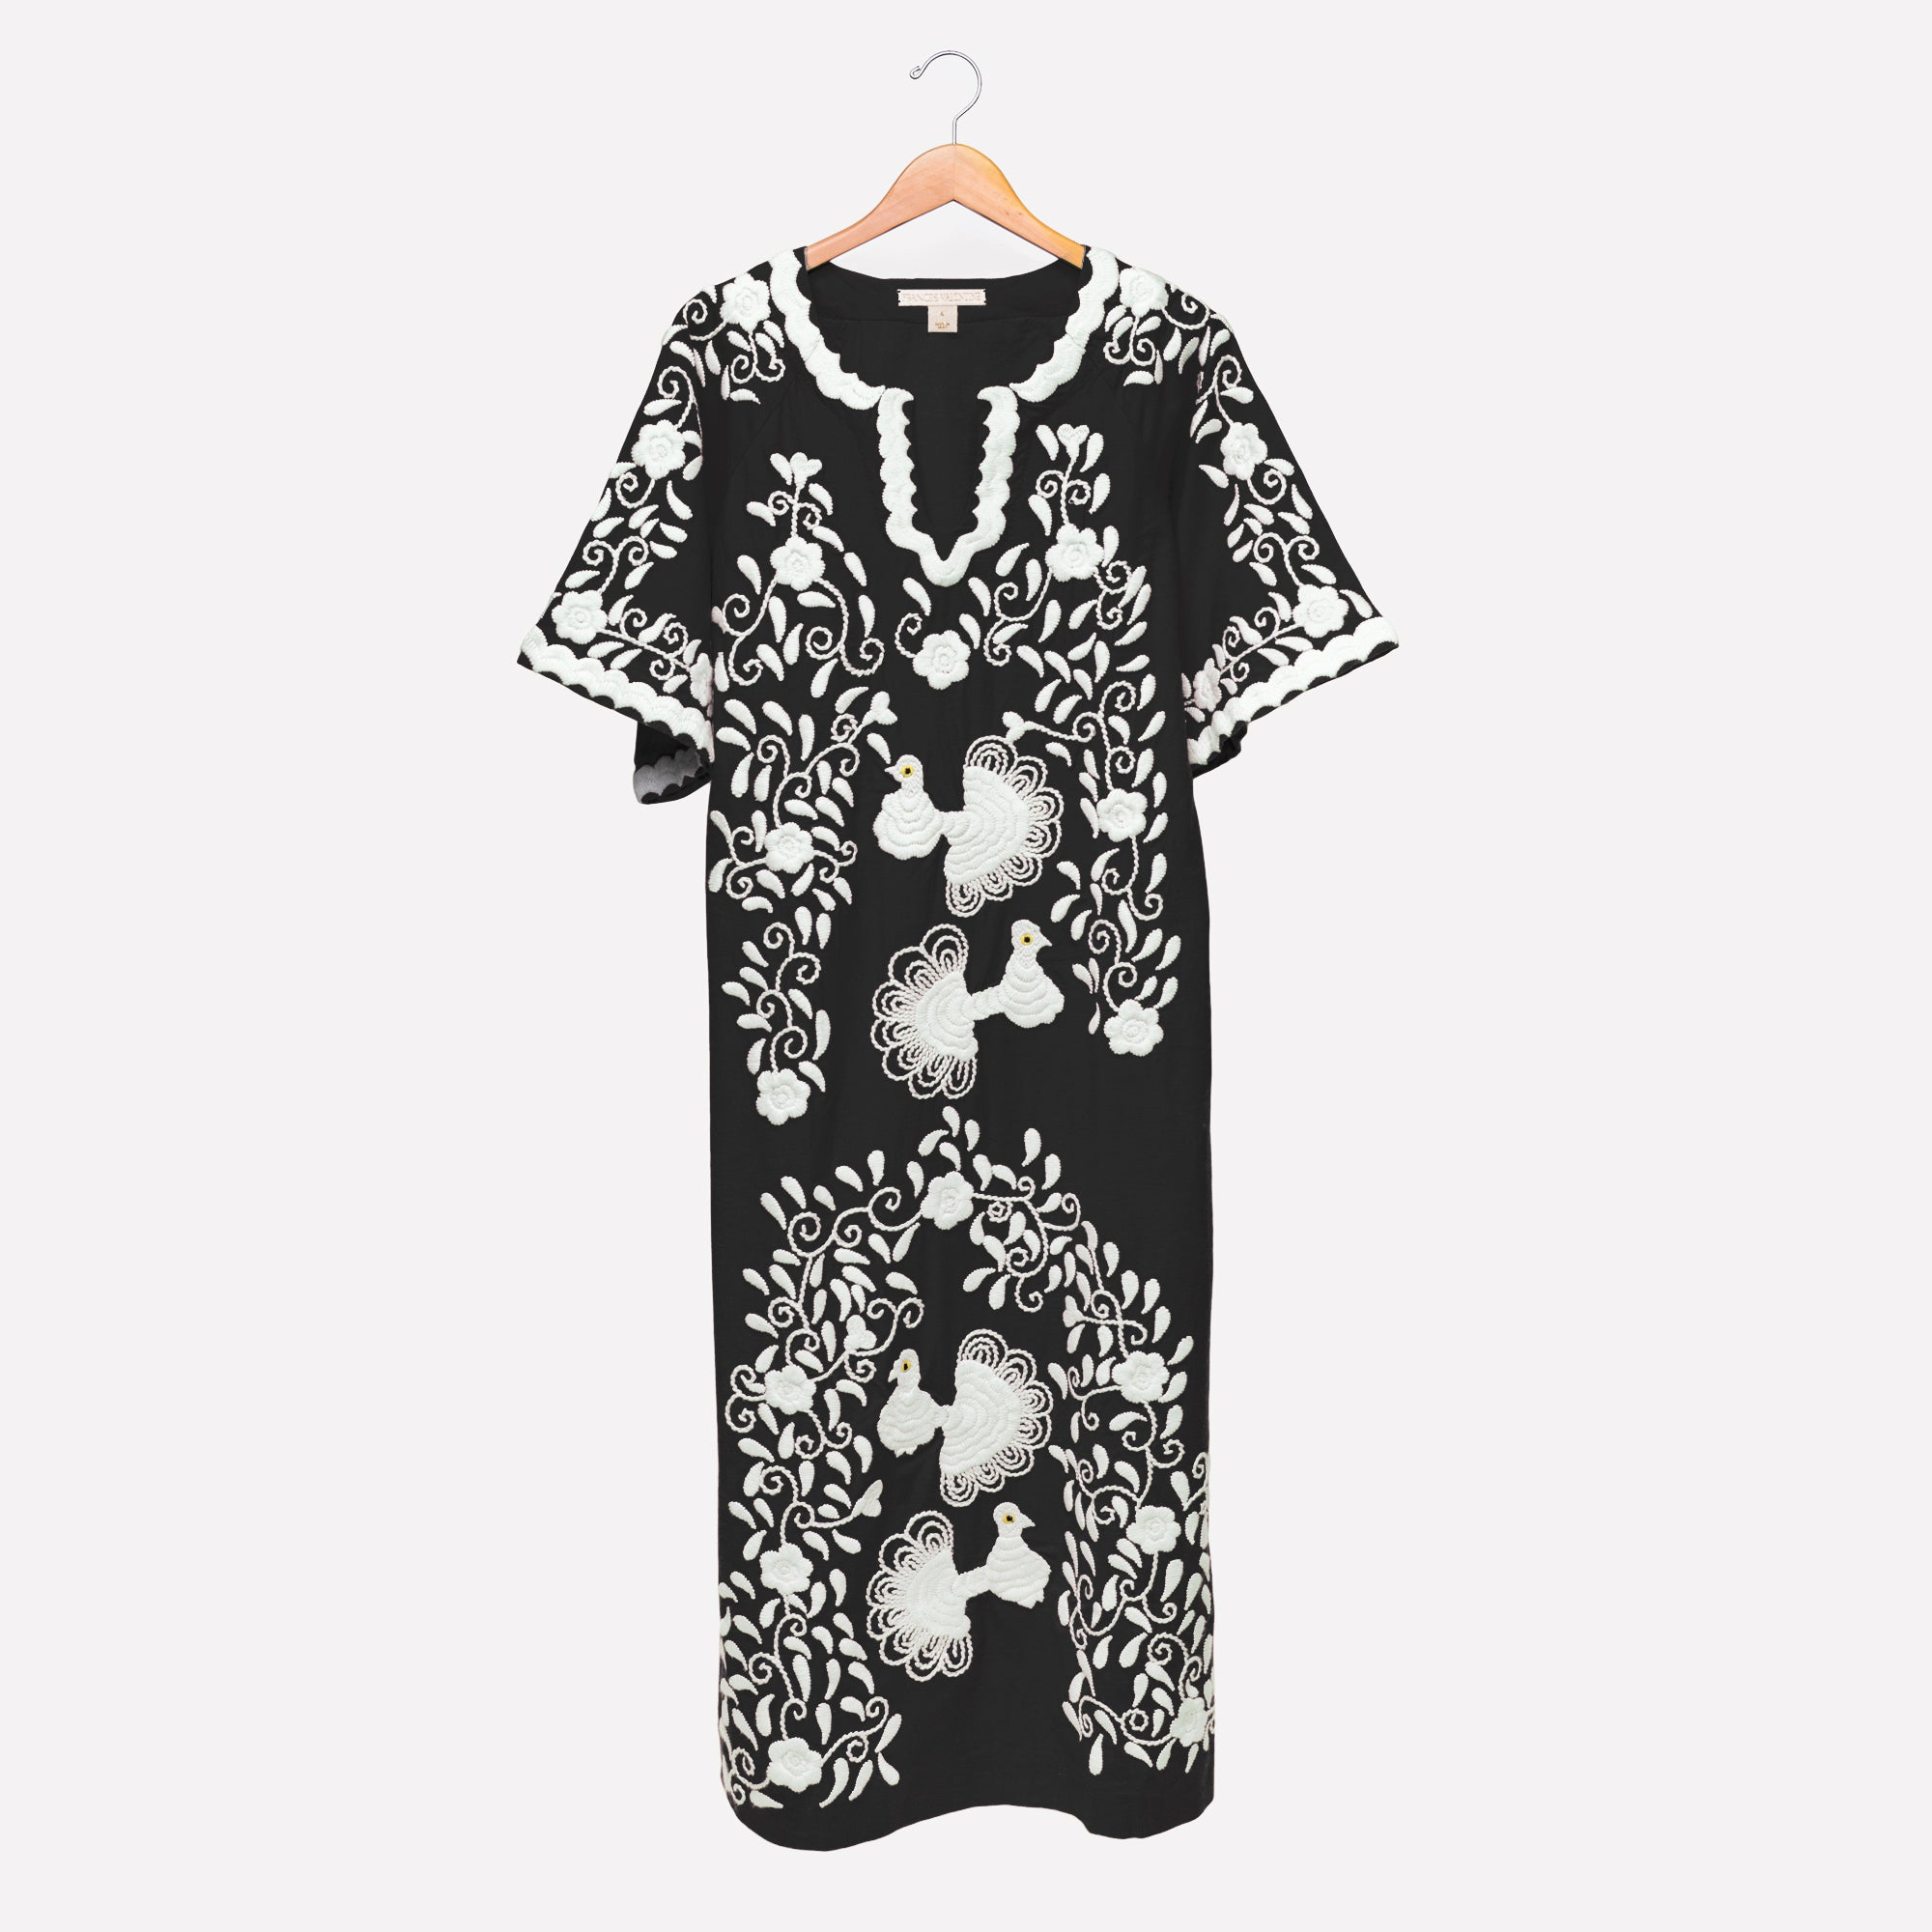 Peacock Caftan Dress Black White